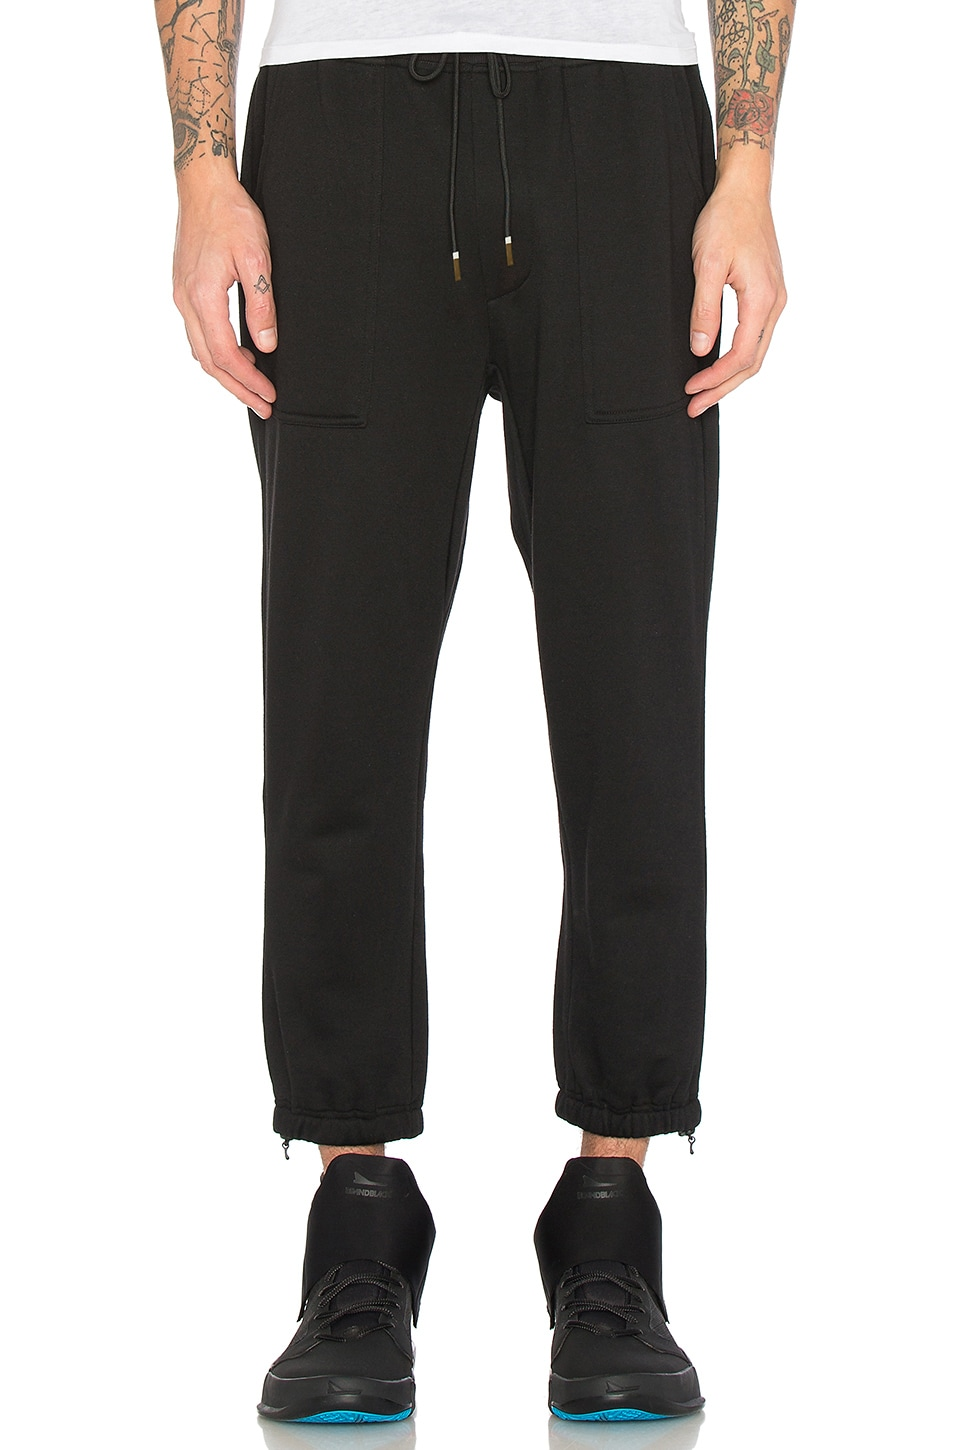 Nelson Tech Fleece Pant by Brandblack